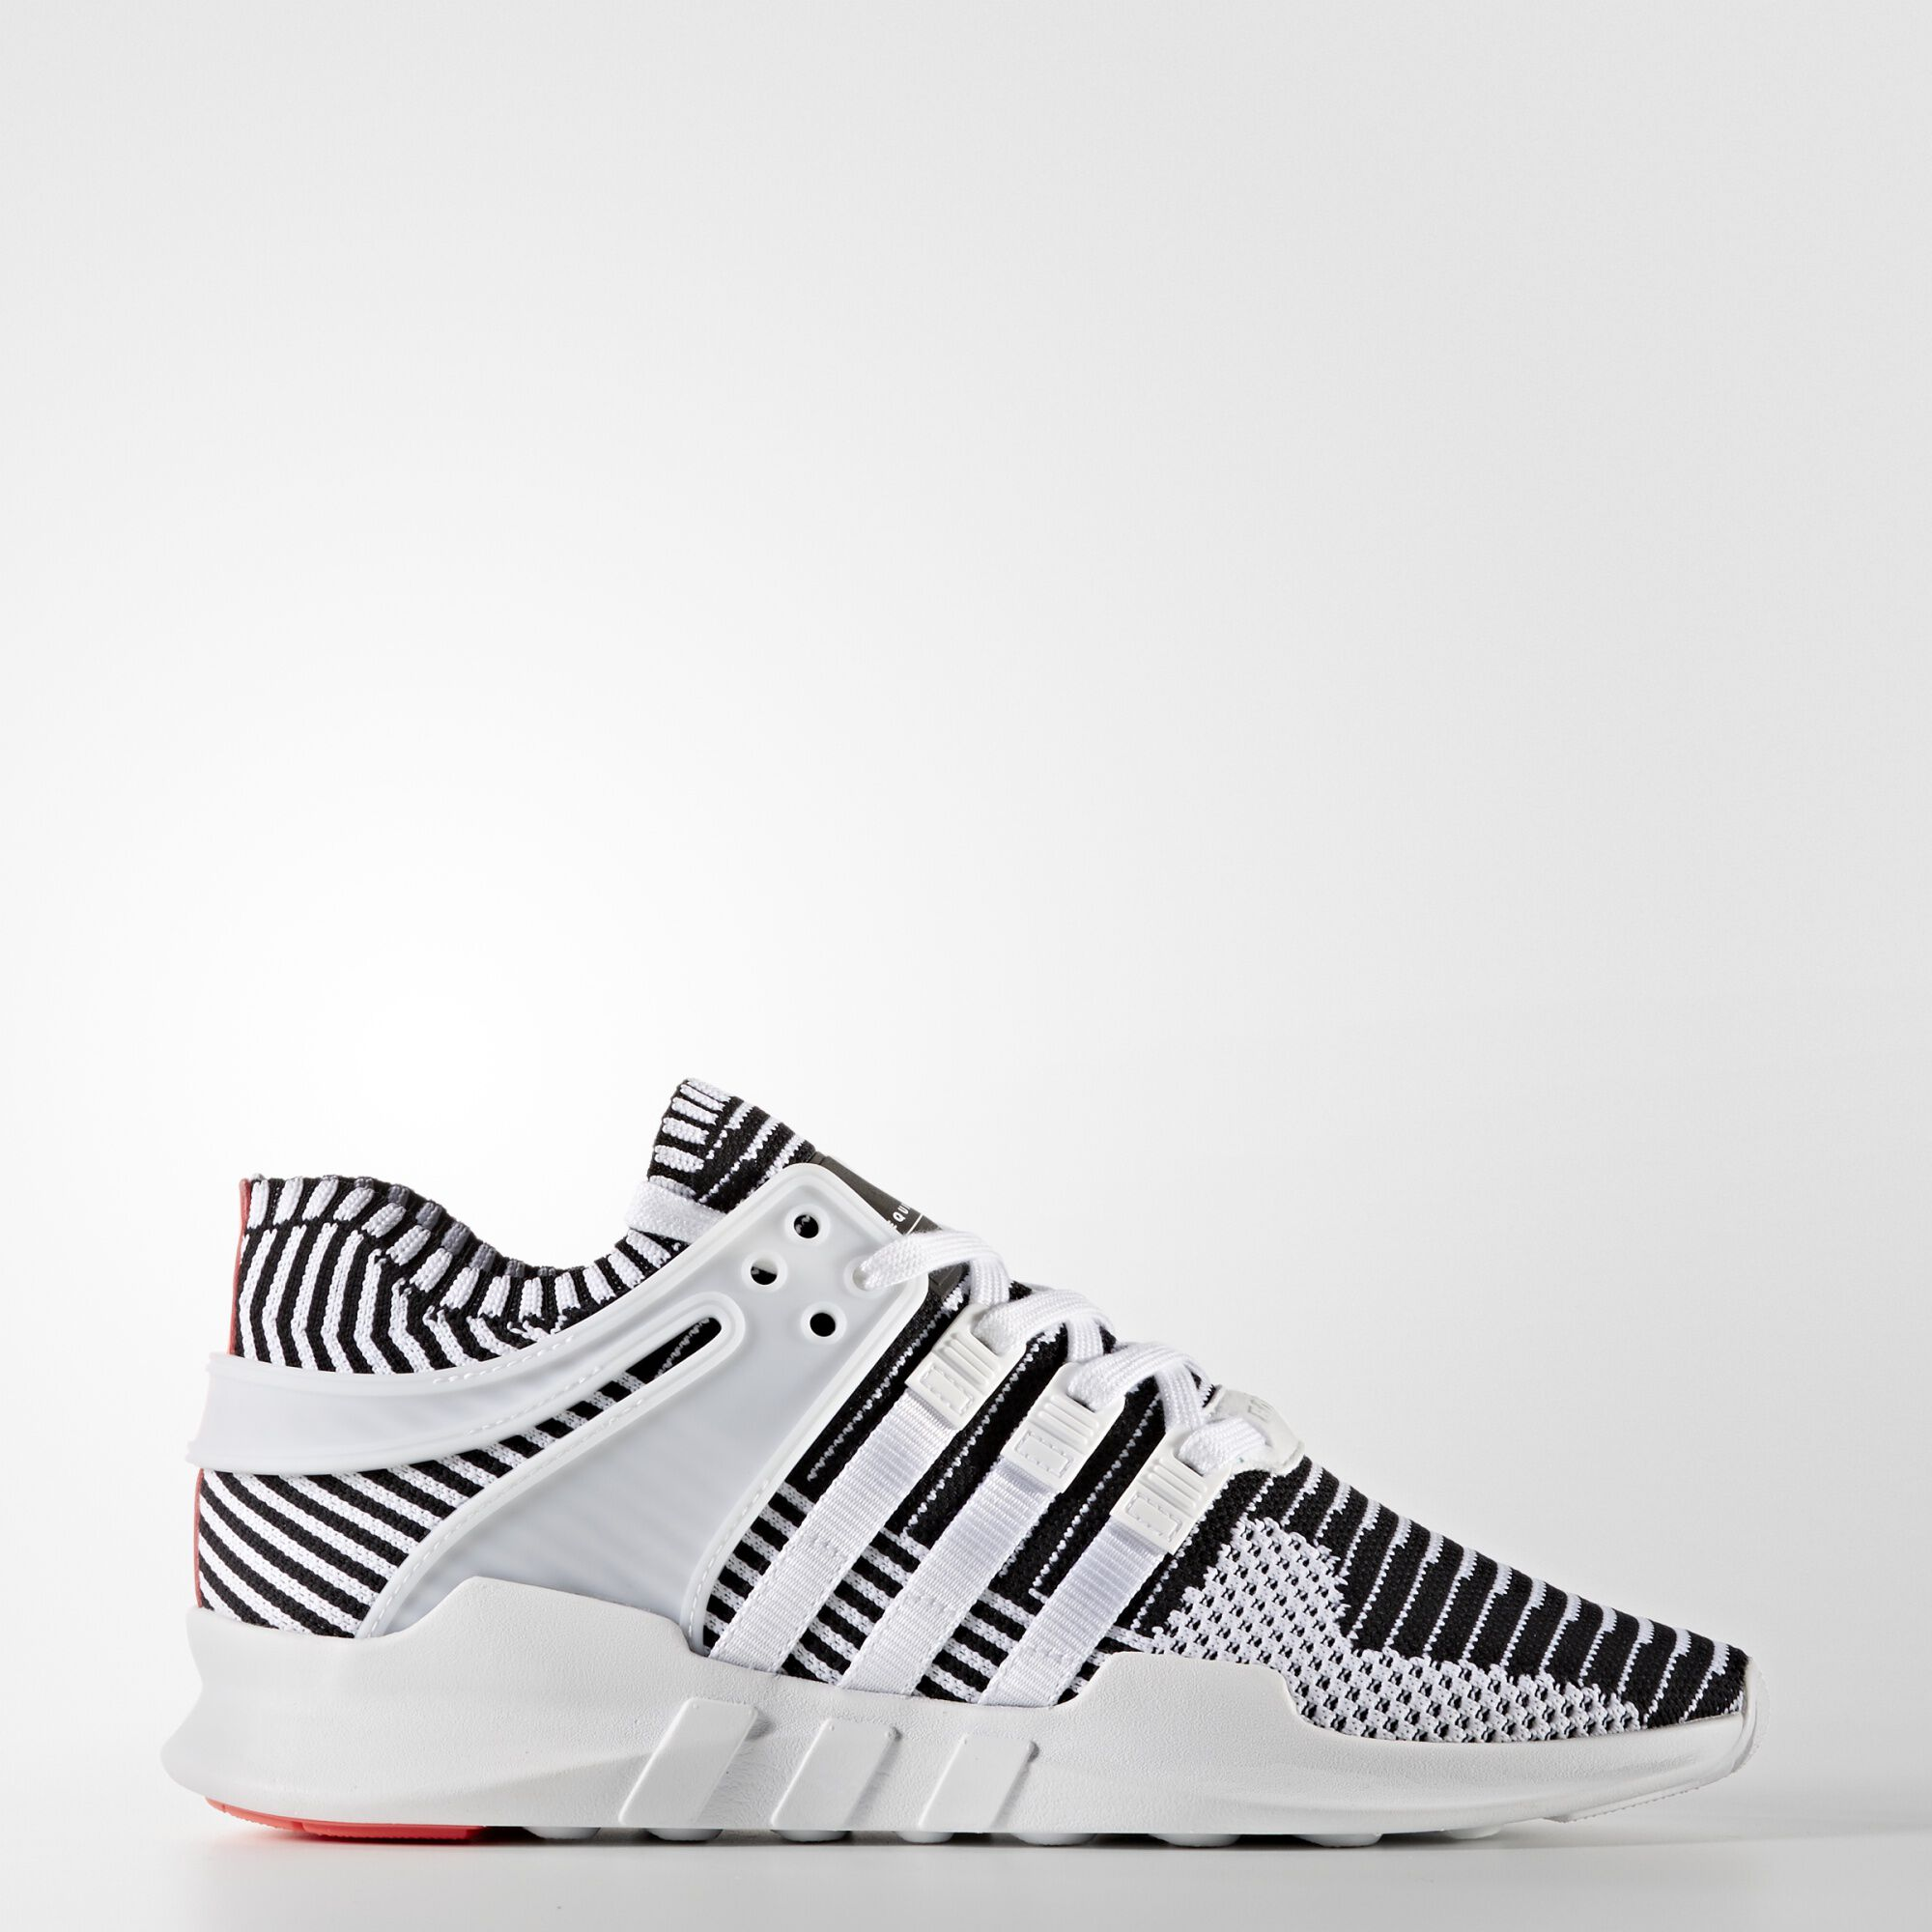 adidas EQT ADV 91 16 Pack Releases Tomorrow